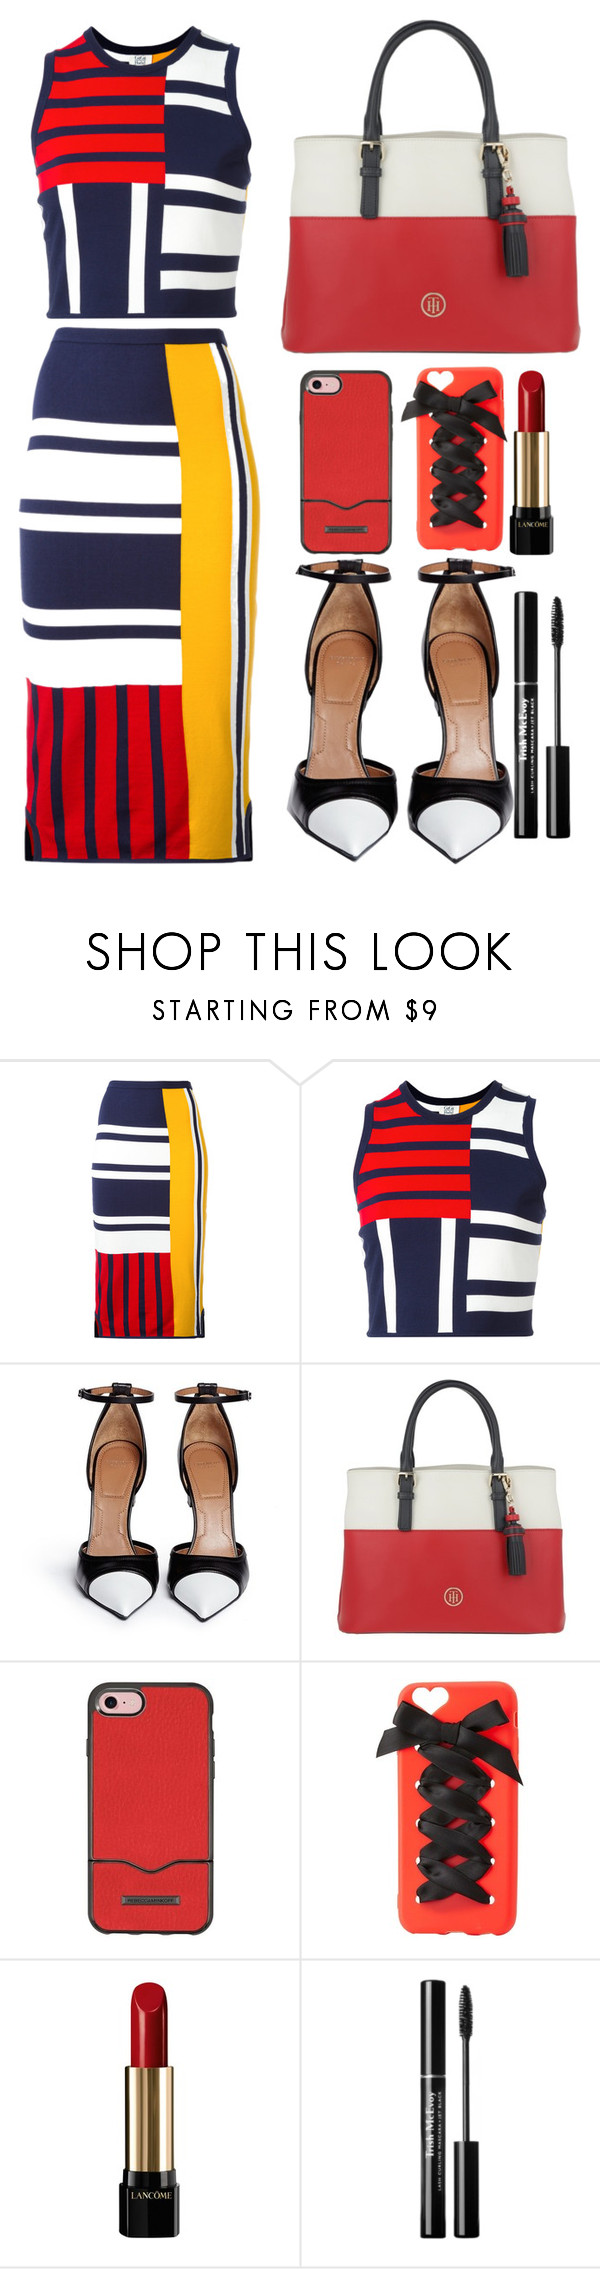 """""""tommy hilfiger dress"""" by faesadanparkaia on Polyvore featuring Tommy Hilfiger, Givenchy, Rebecca Minkoff, Charlotte Russe and Lancôme"""